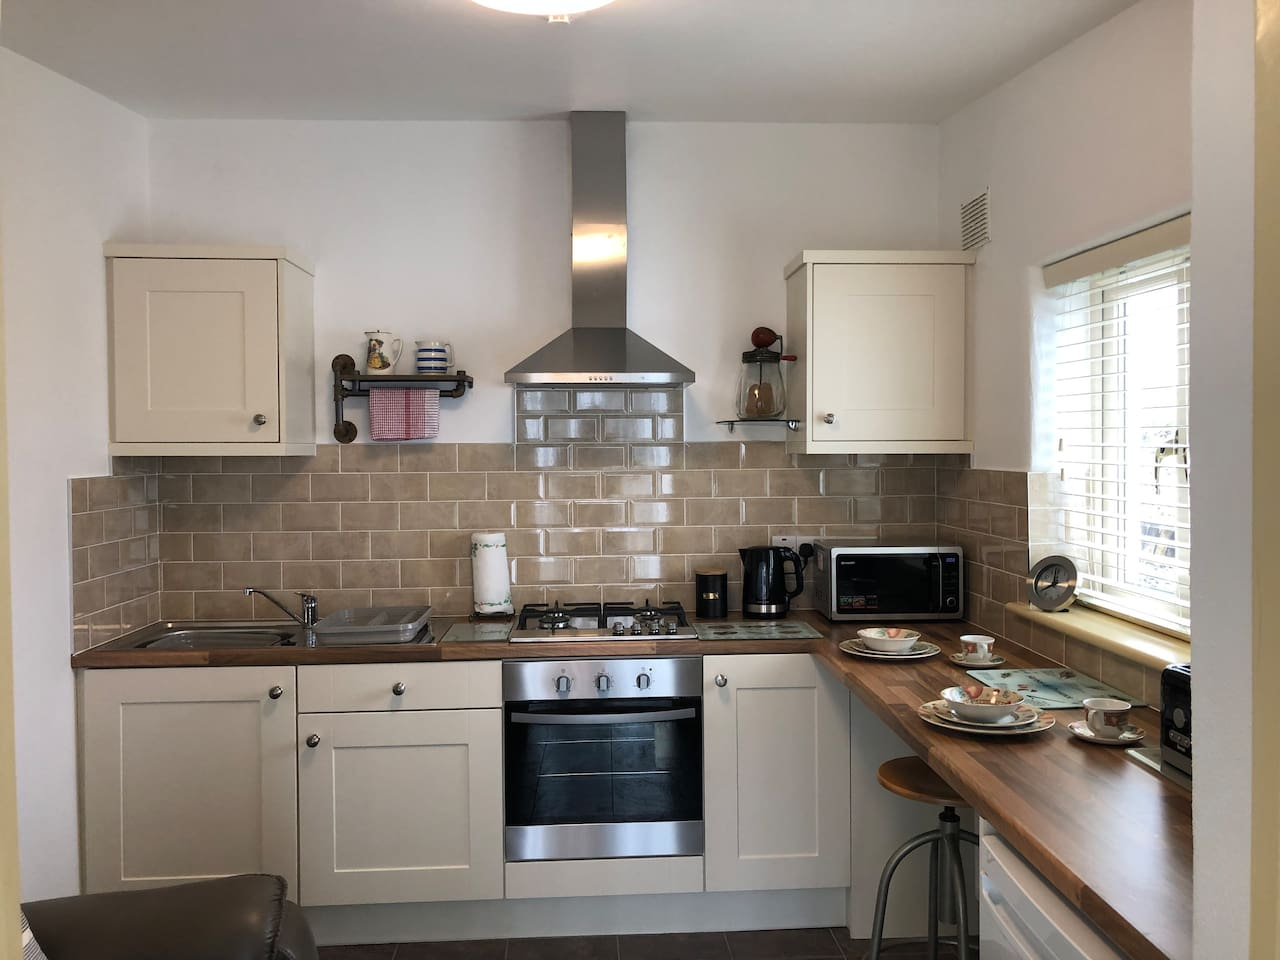 Fully equipped kitchen with breakfast bar overlooking the views of the village.  There is also a settee and TV located in the kitchen. Full WFI throughout the apartment.